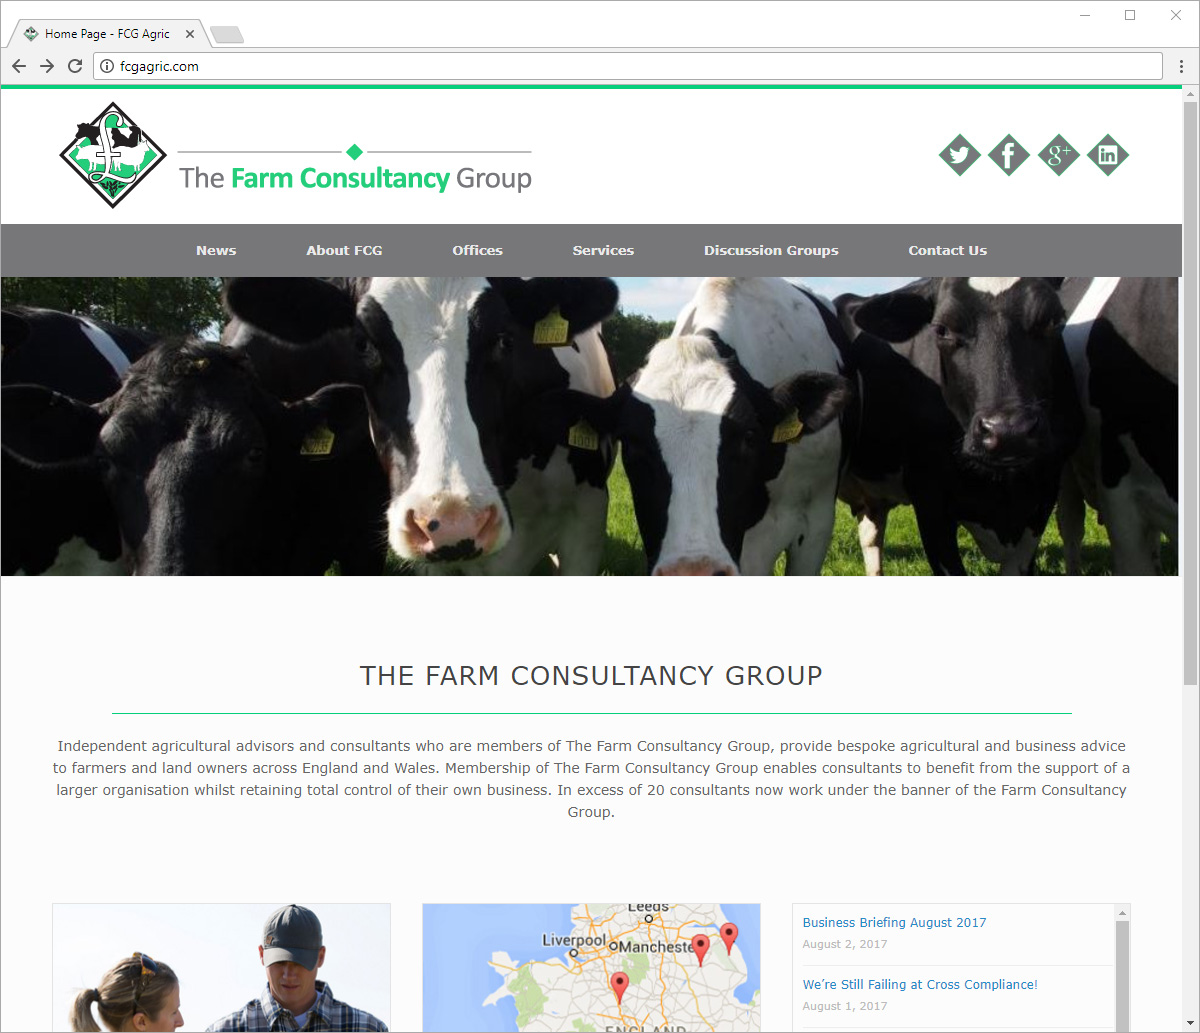 Computer screen preview of Farm Consultancy Group website